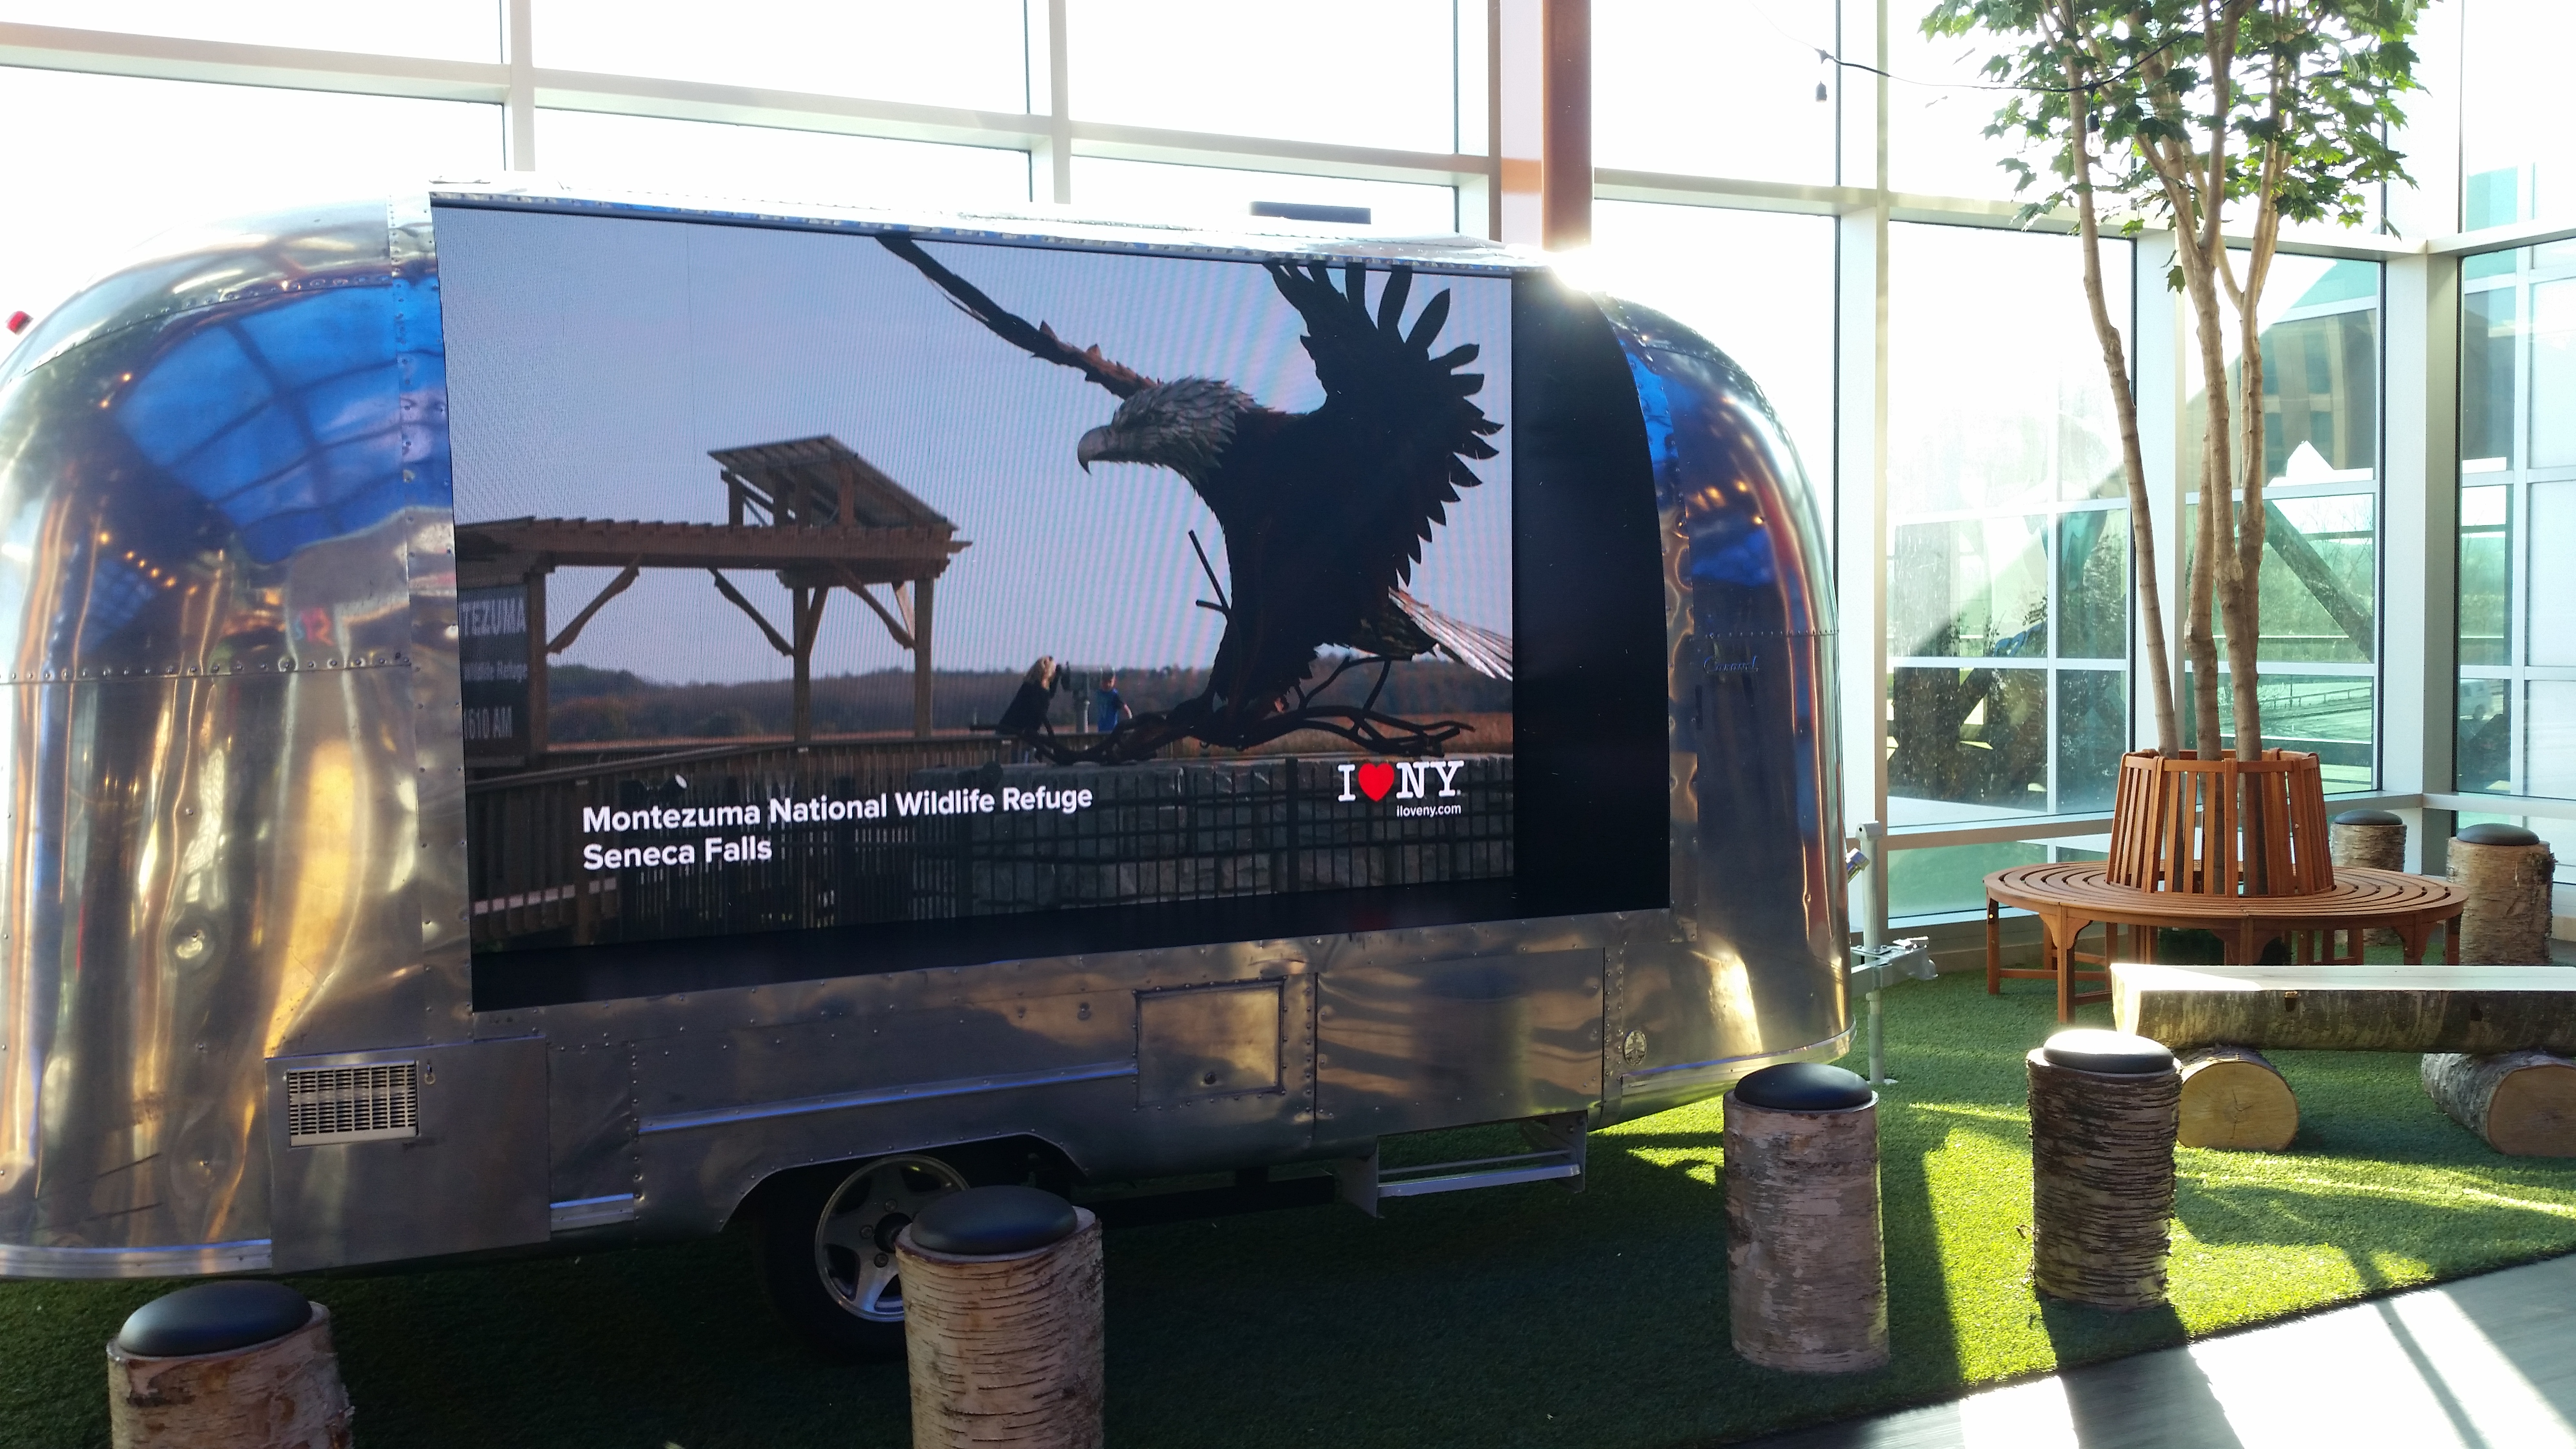 Camper at I Love NY's welcome center in Destiny USA